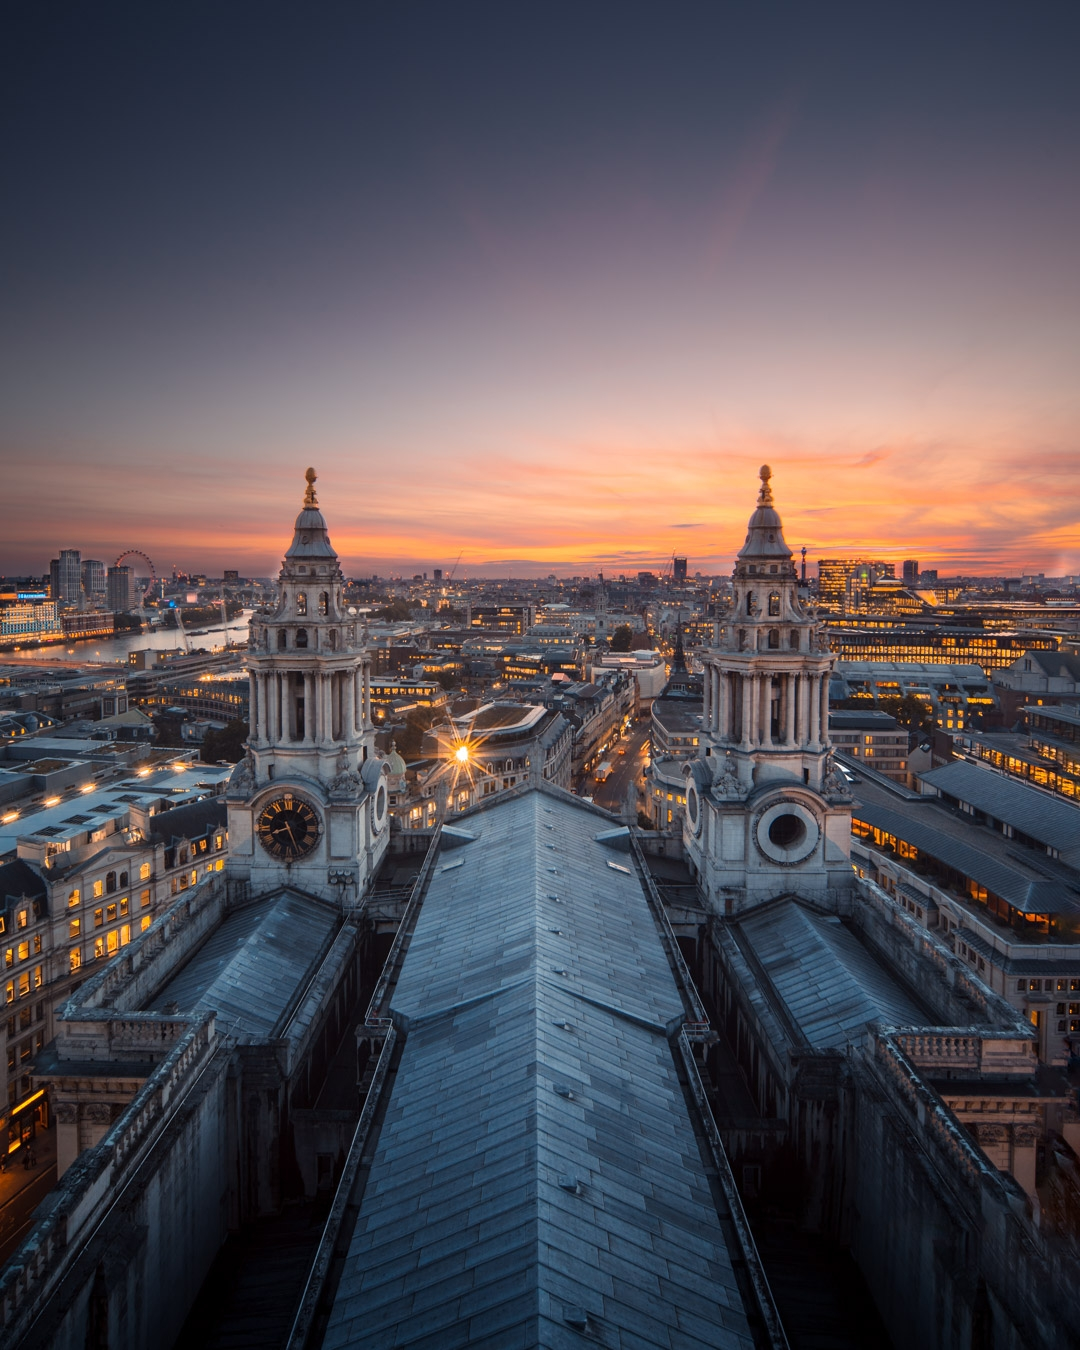 'Summer at St Paul's' by @theliamman – London